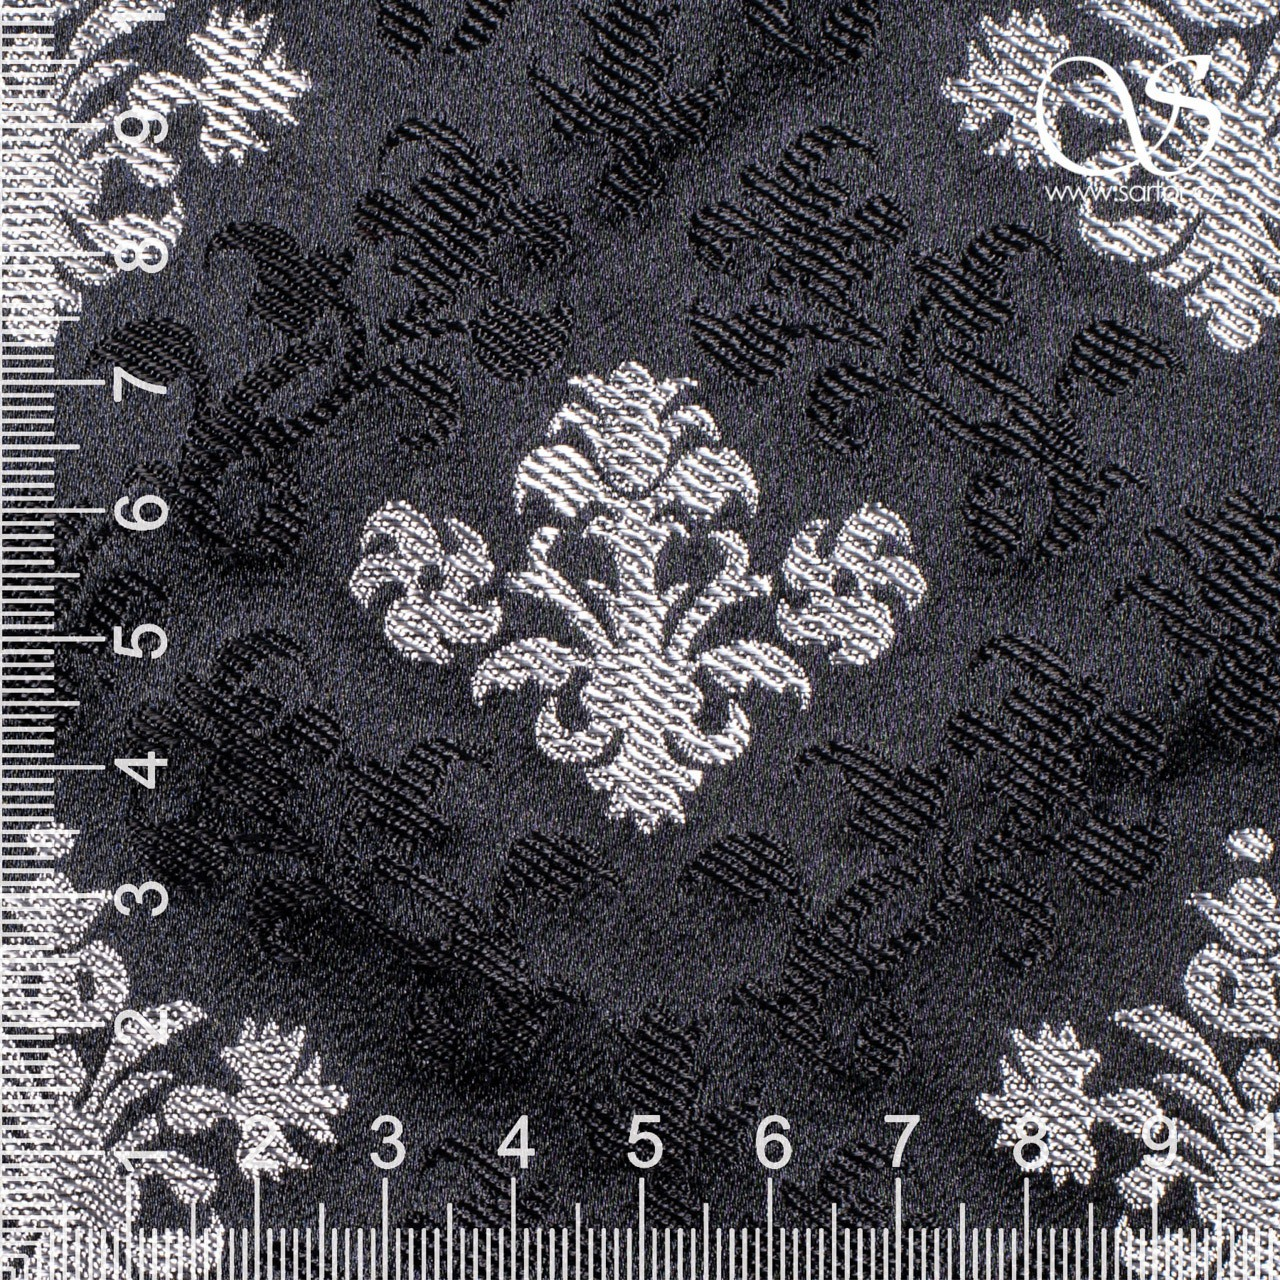 Floral Renaissance Brocade, Black and Silver